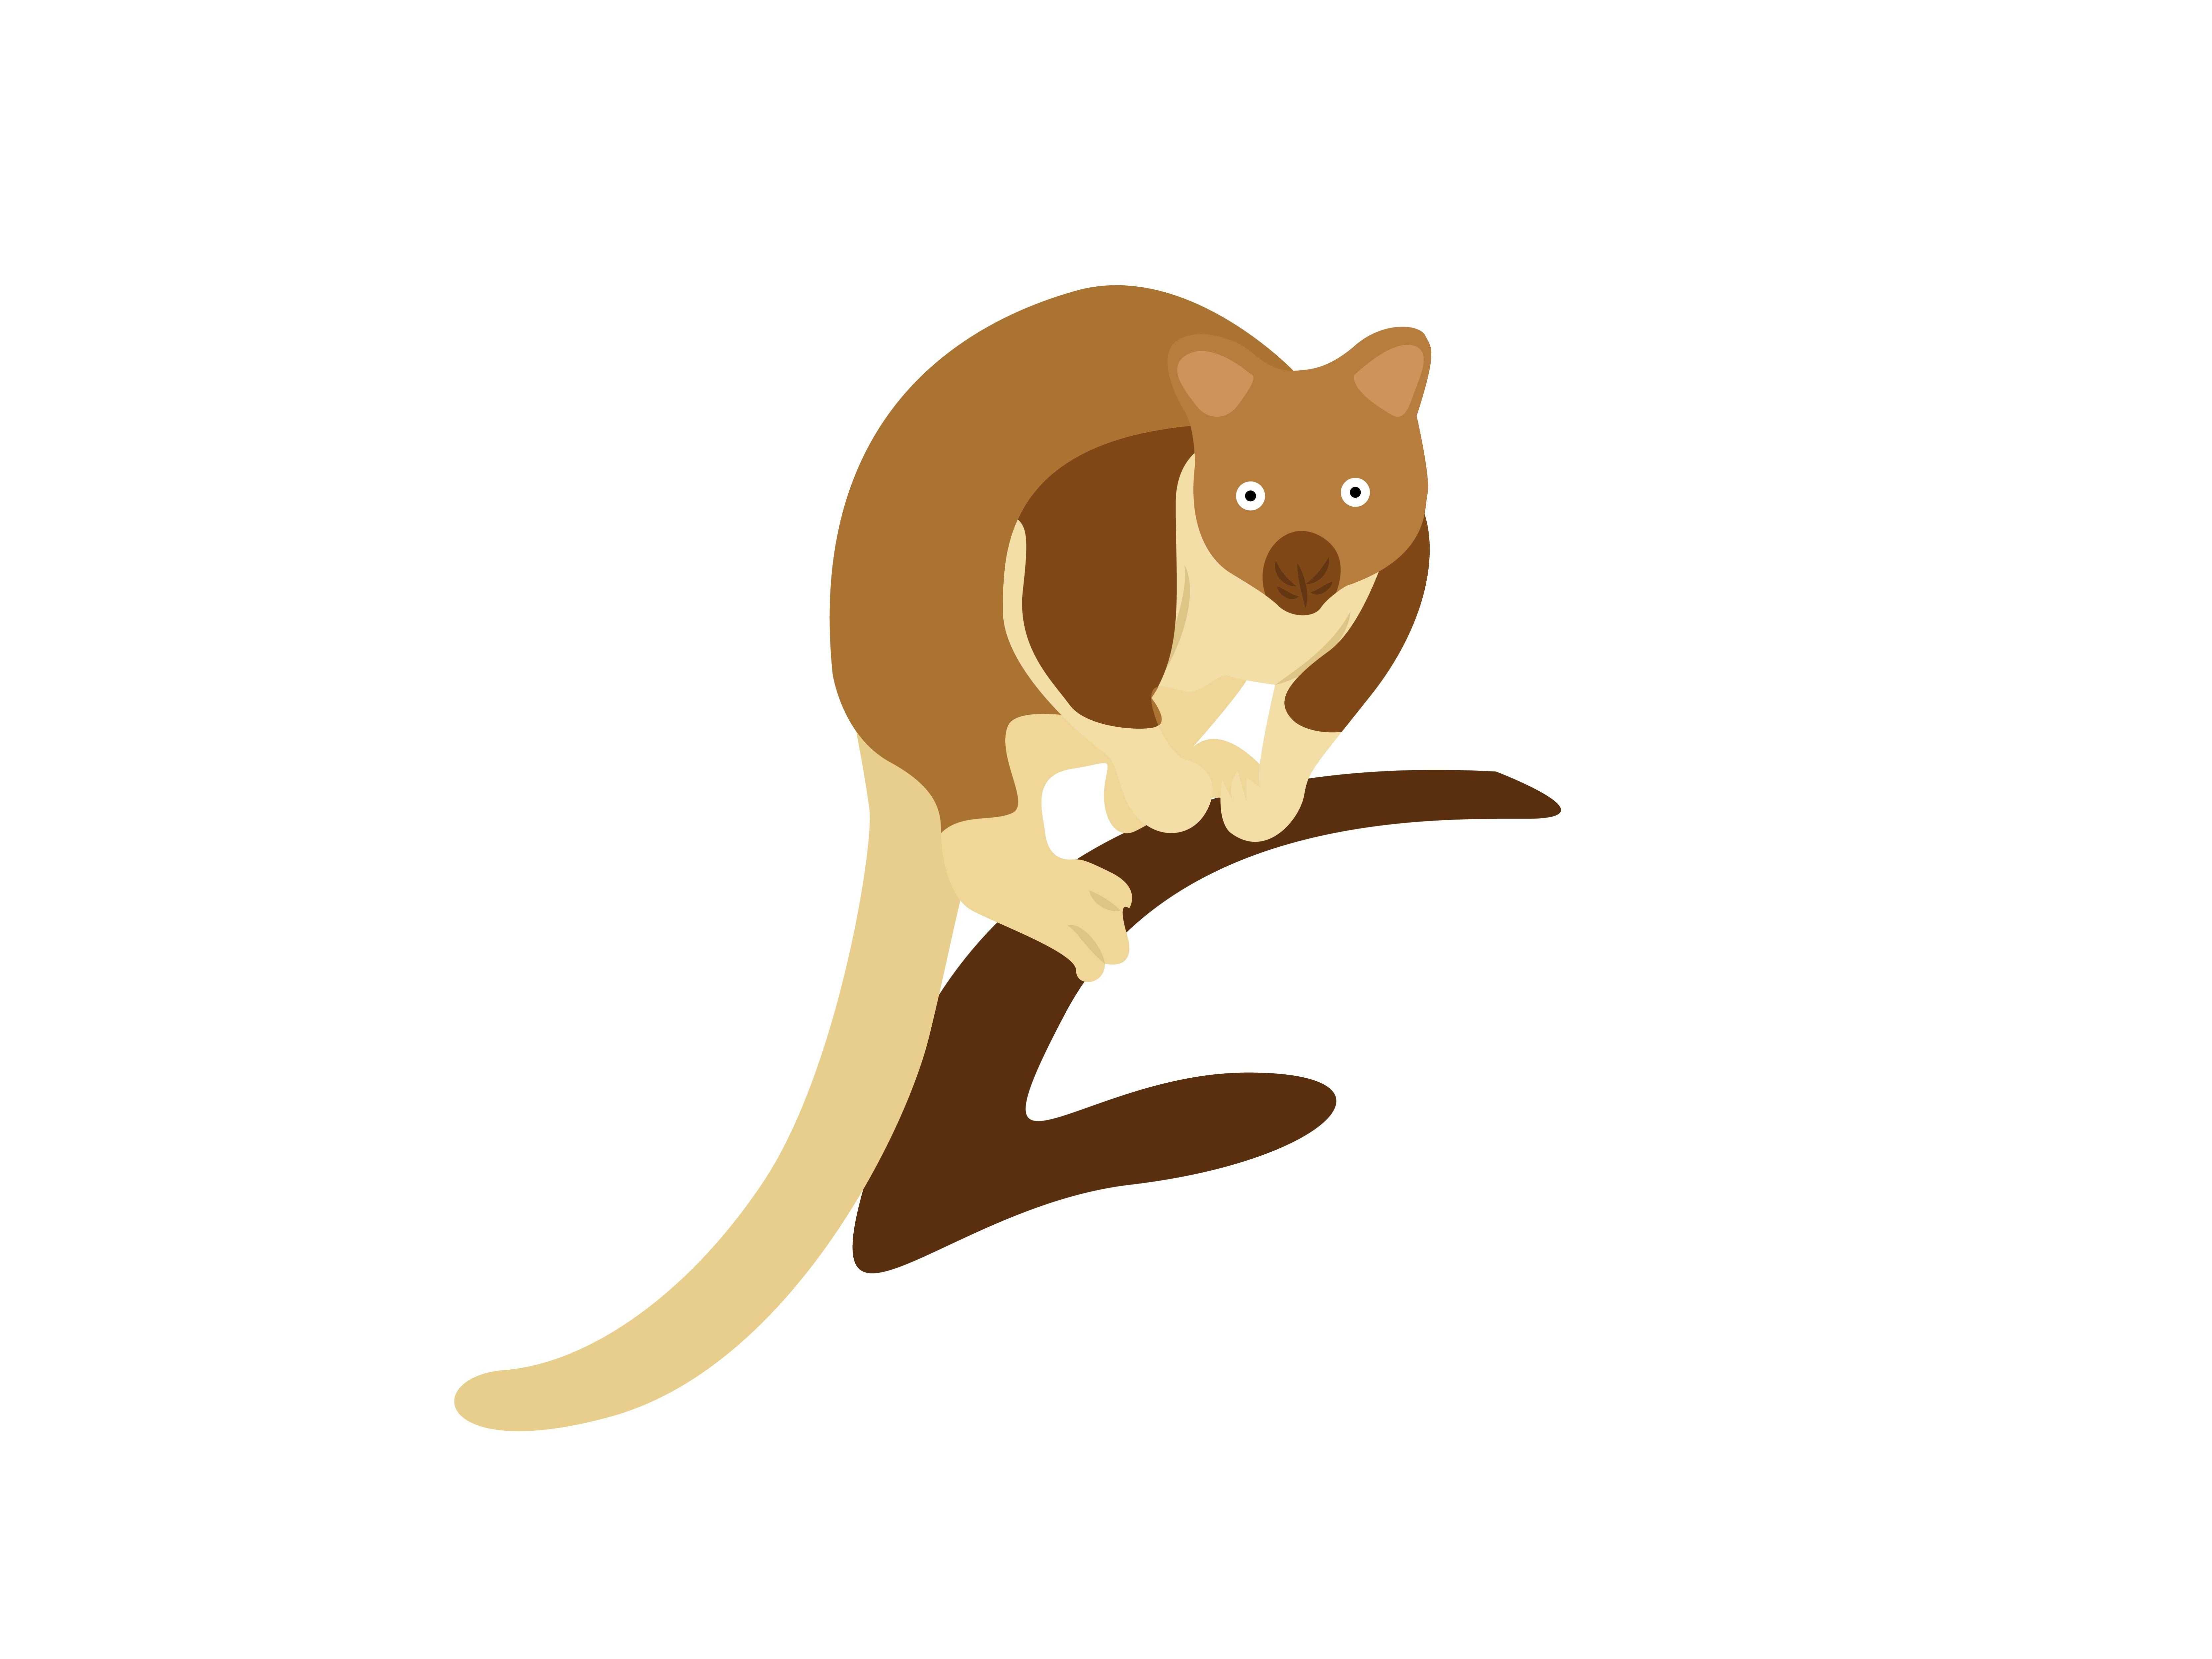 Download Free Tree Kangaroo Standing Animal Graphic By Archshape Creative for Cricut Explore, Silhouette and other cutting machines.